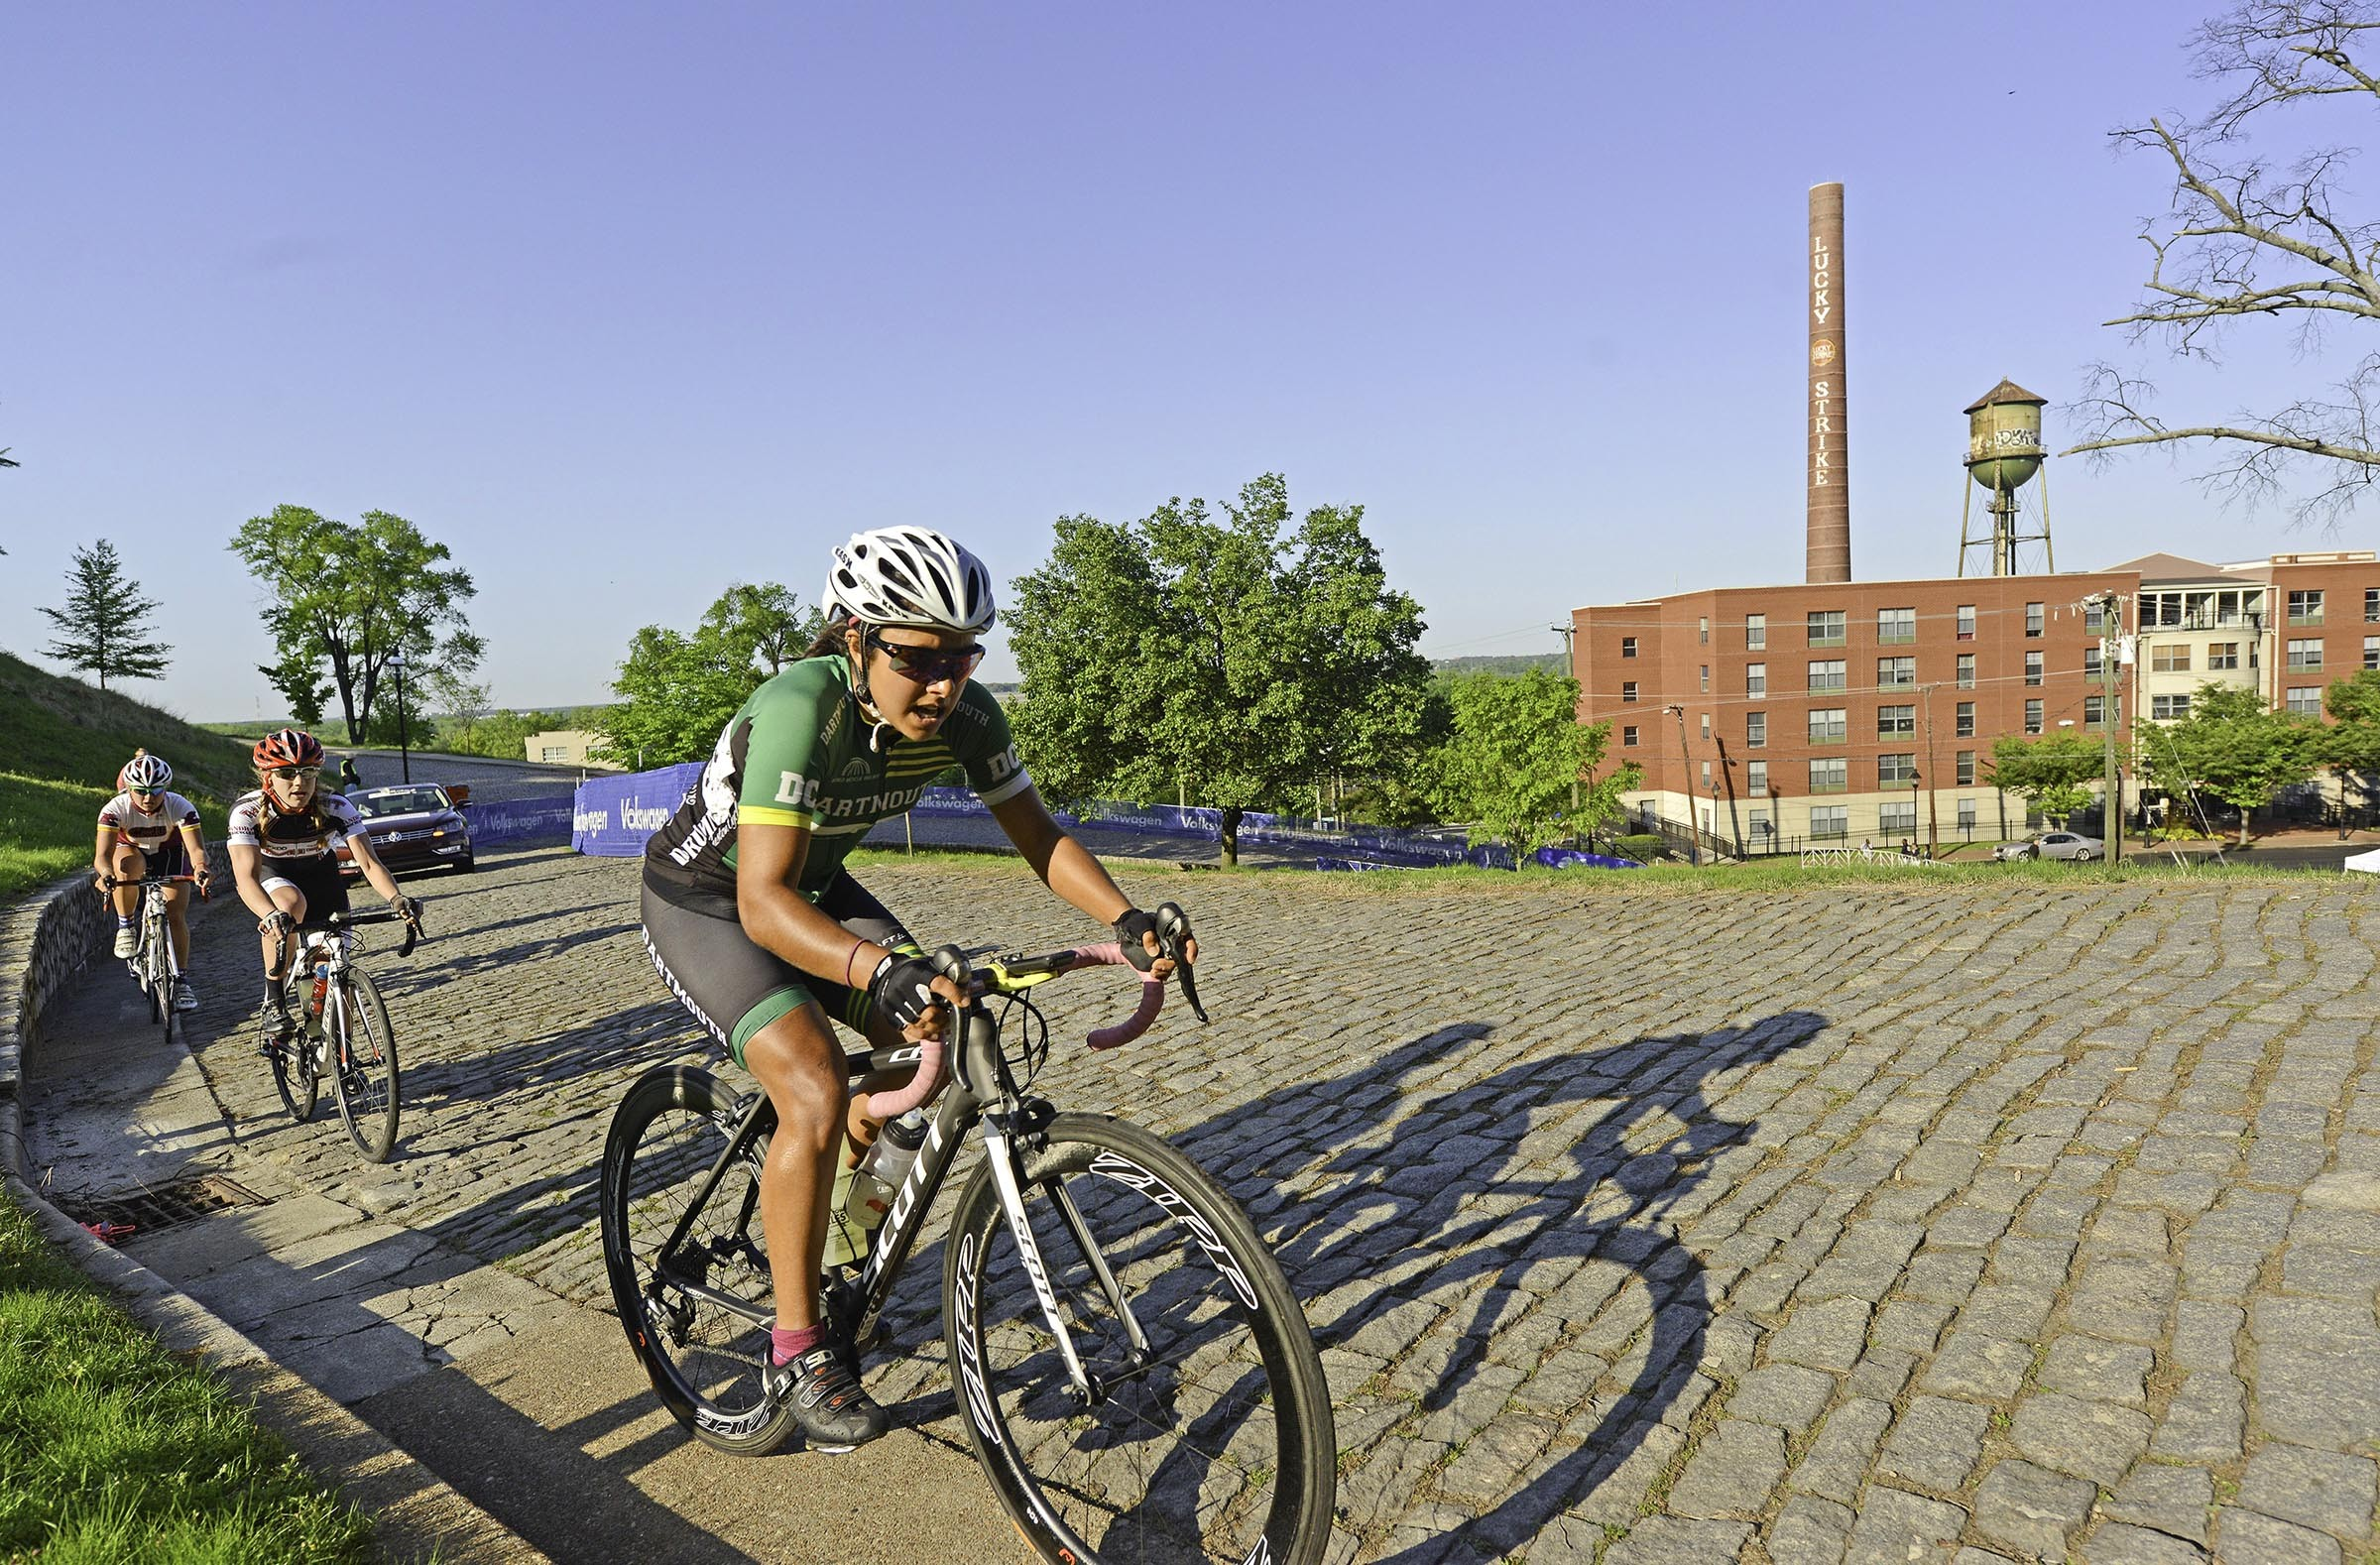 Cyclists mount Libby Hill via a cobblestone roadway during last year's CapTech races. The East End will again be among the venues of the September races.